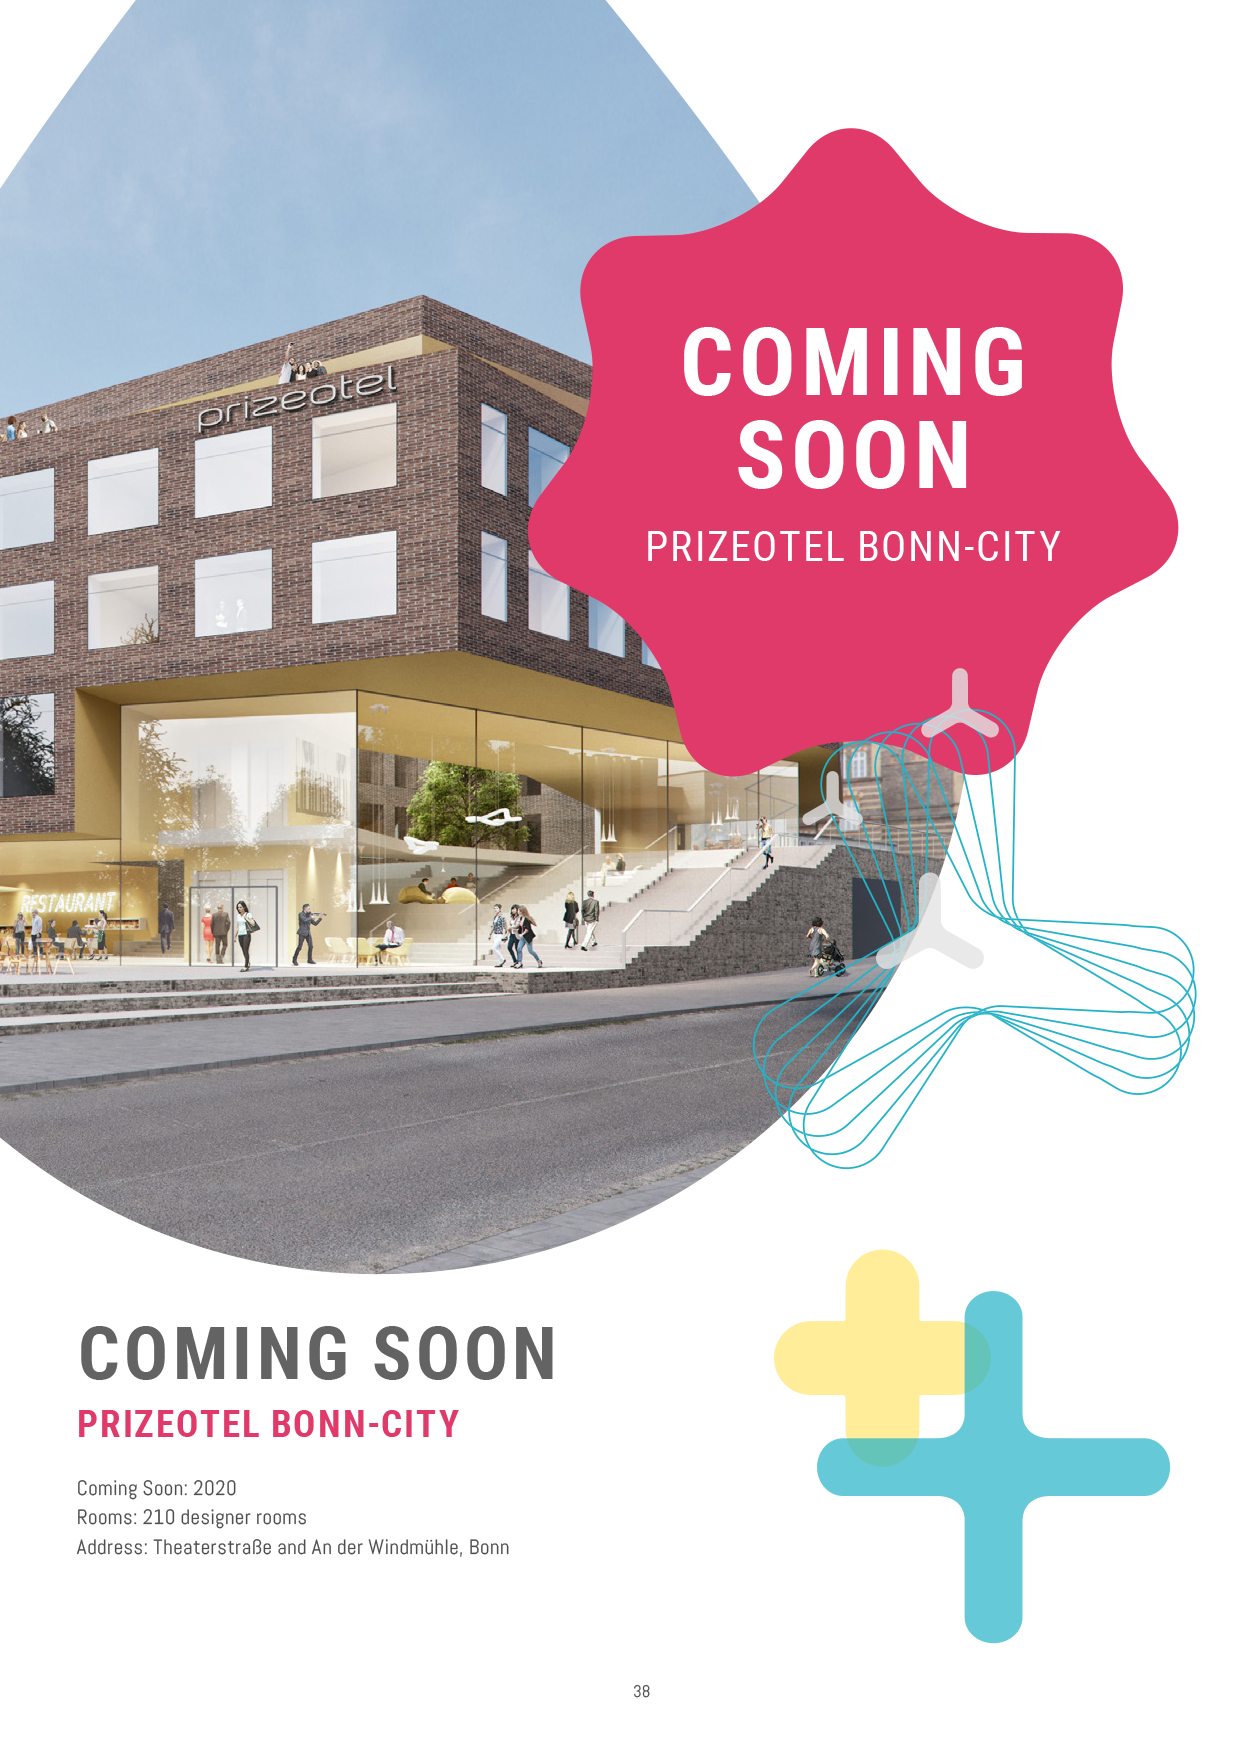 Coming Soon - prizeotel Bonn-City